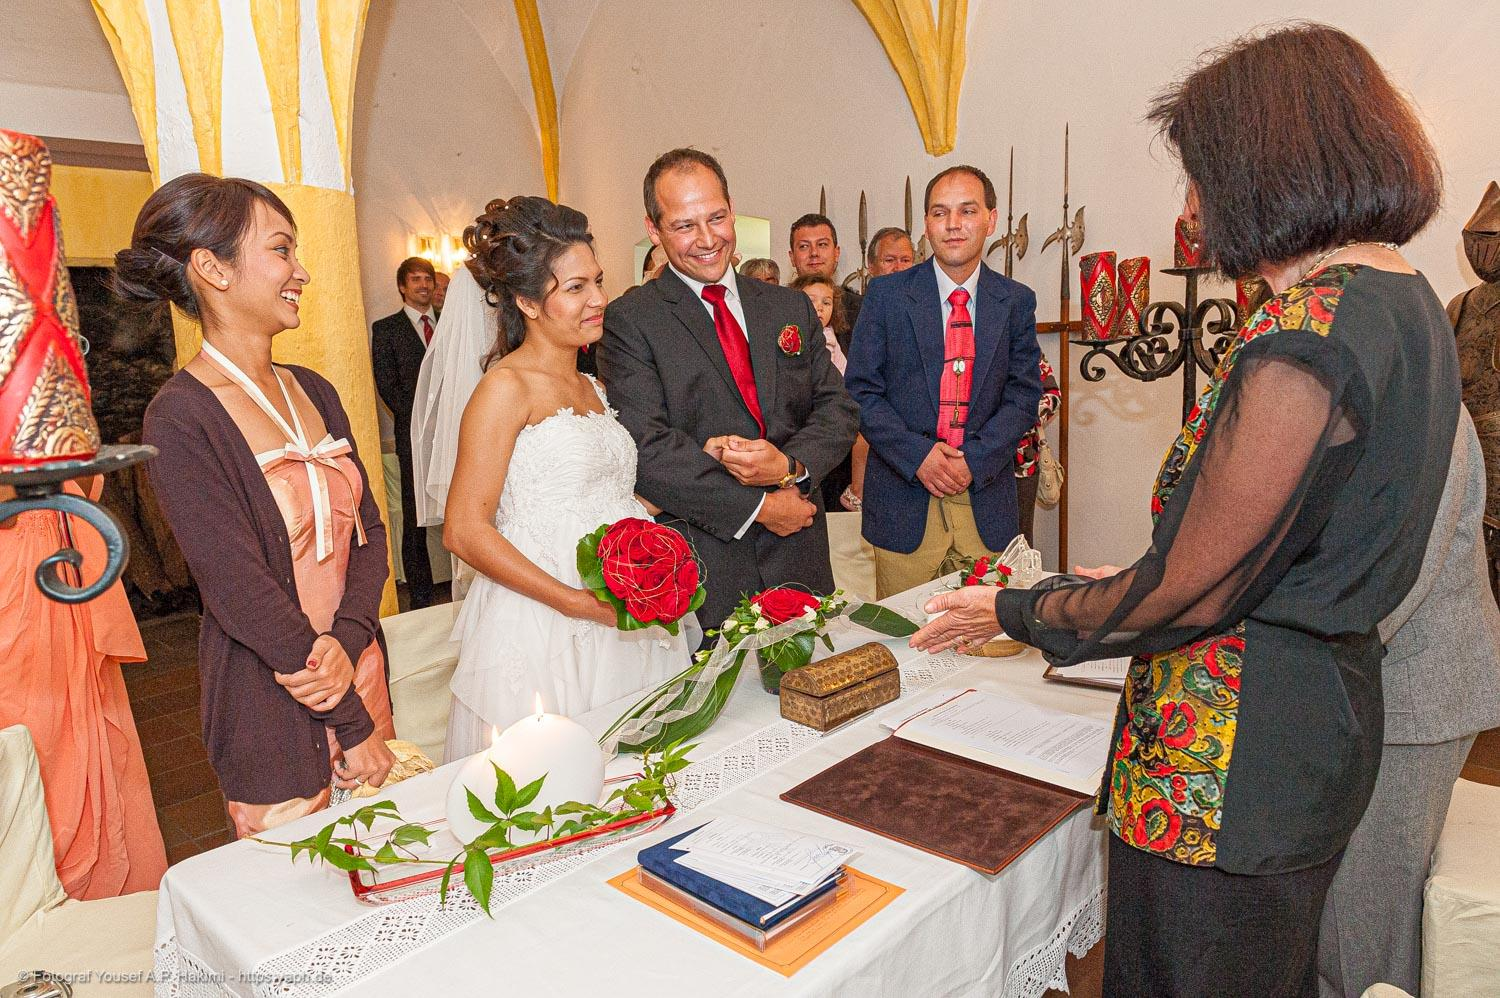 Pictures of the wedding ceremony by Yaph photographer Trier